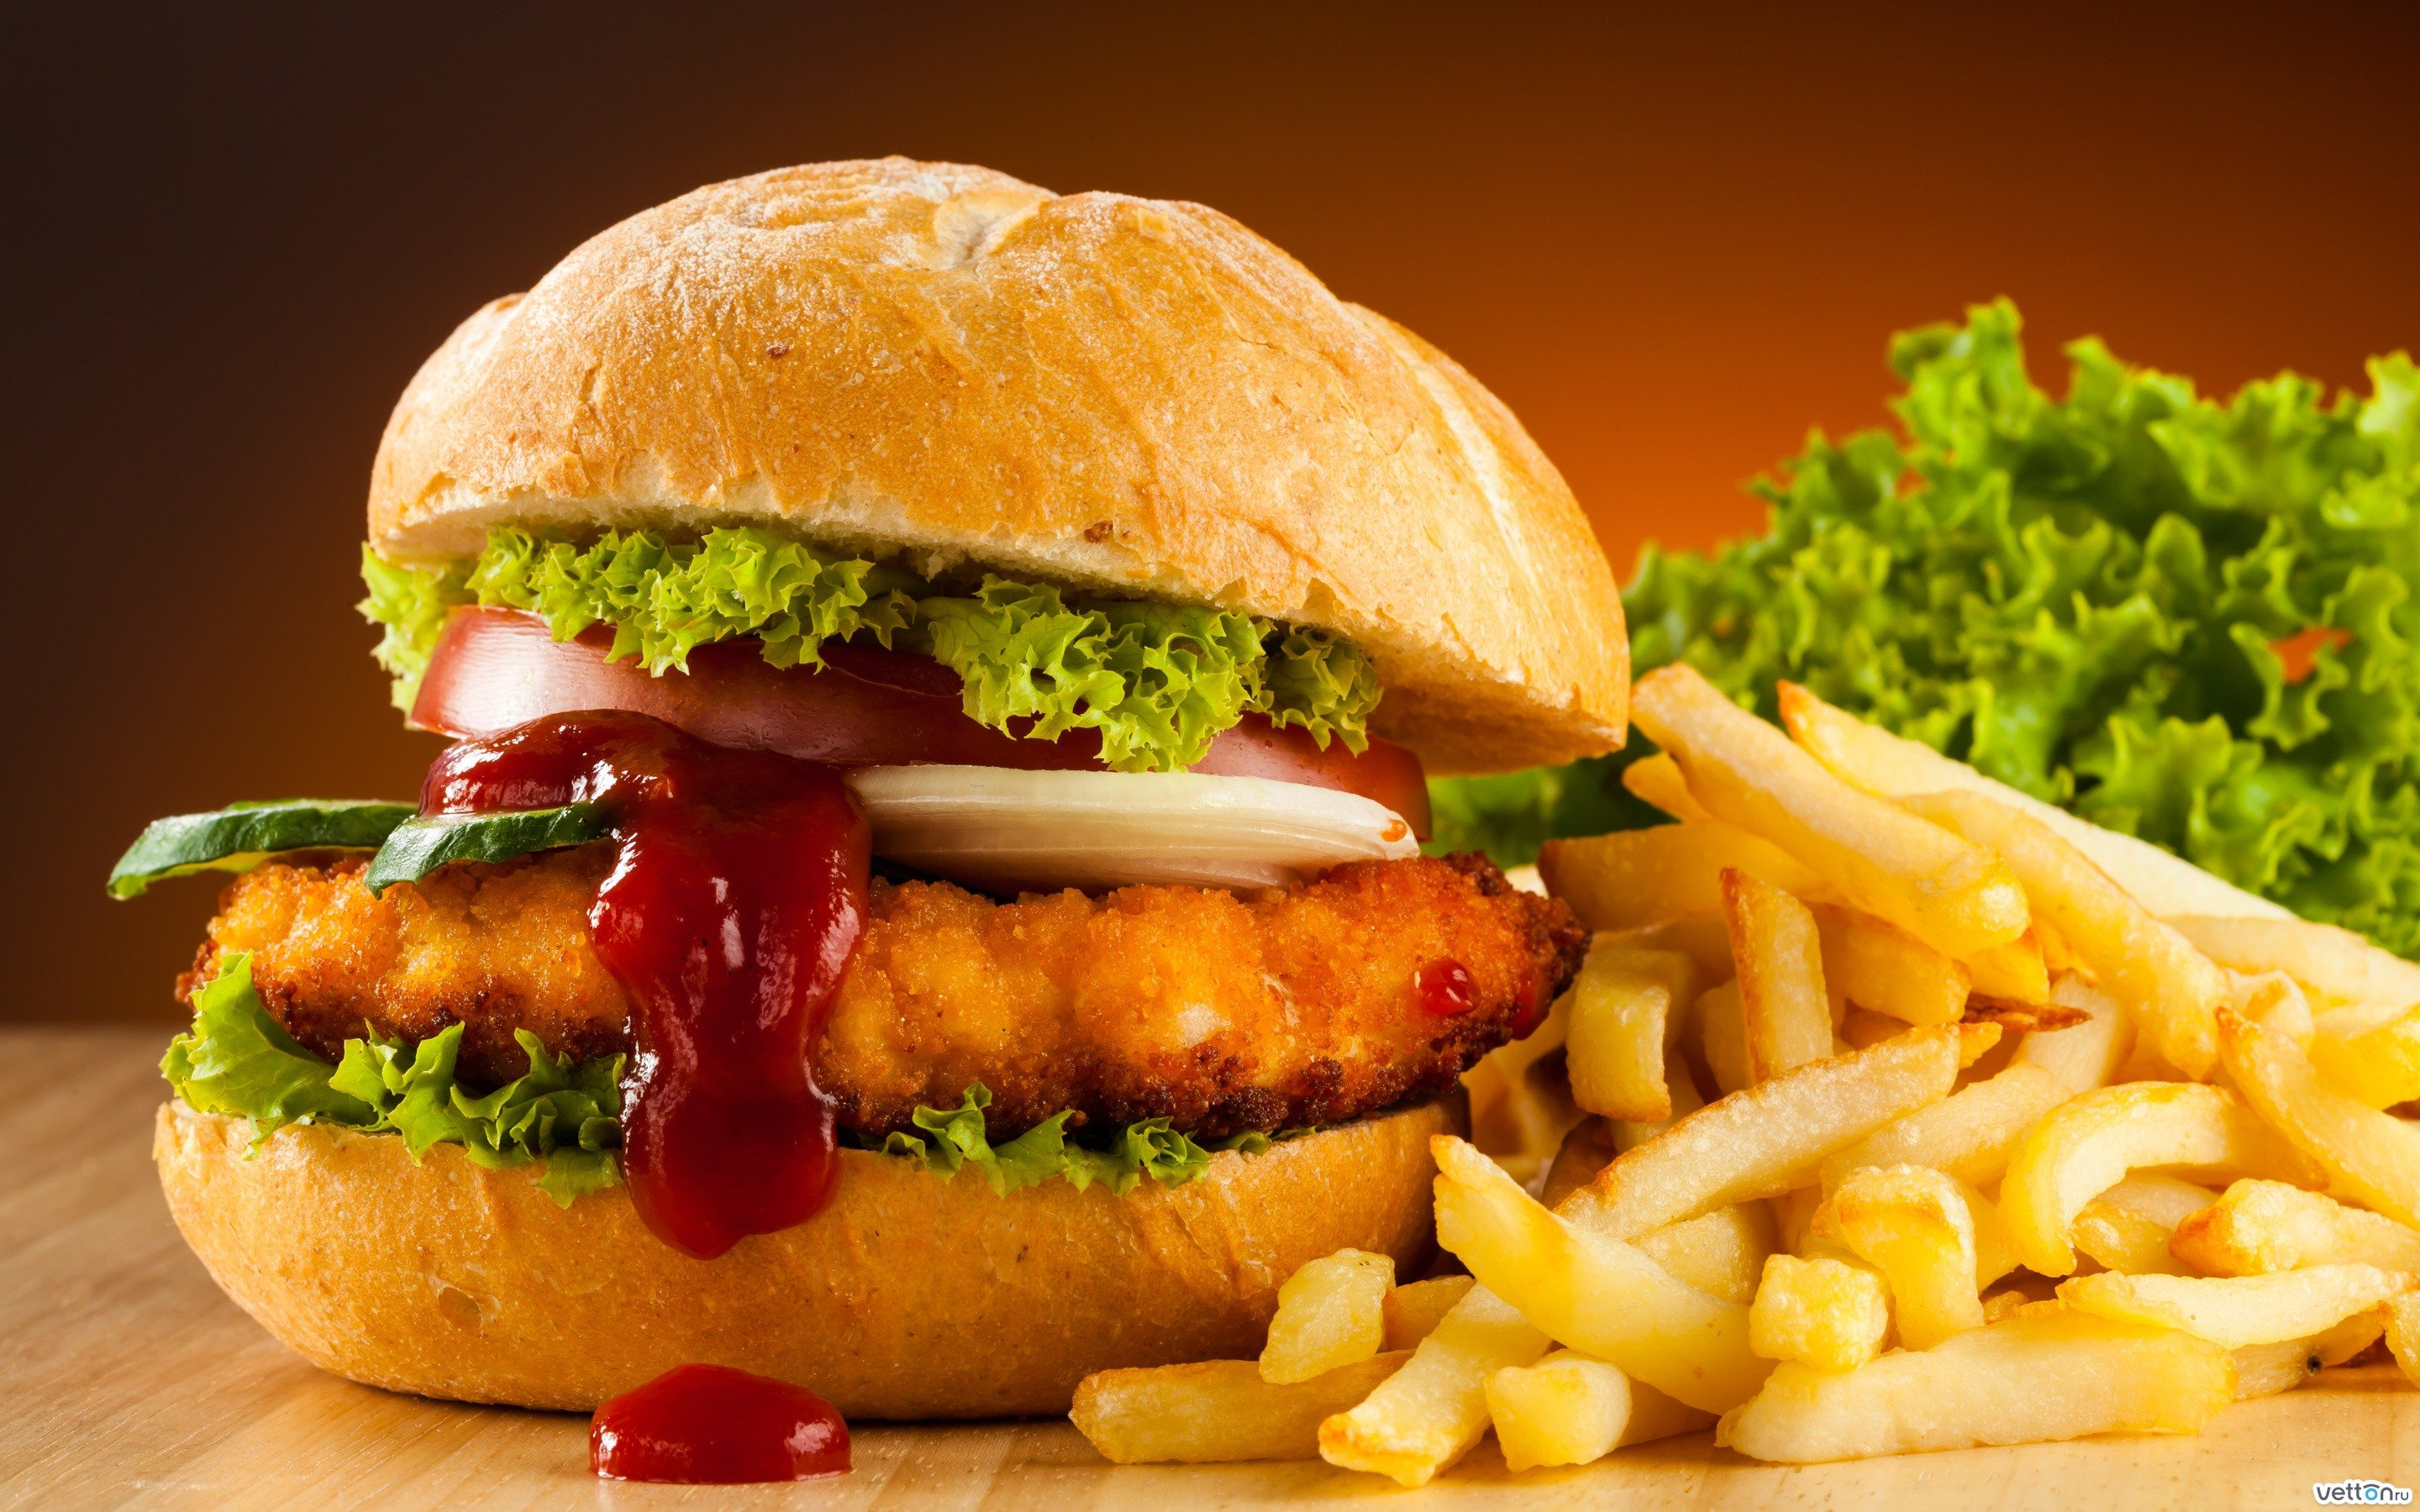 Sands: No fast food tax yet